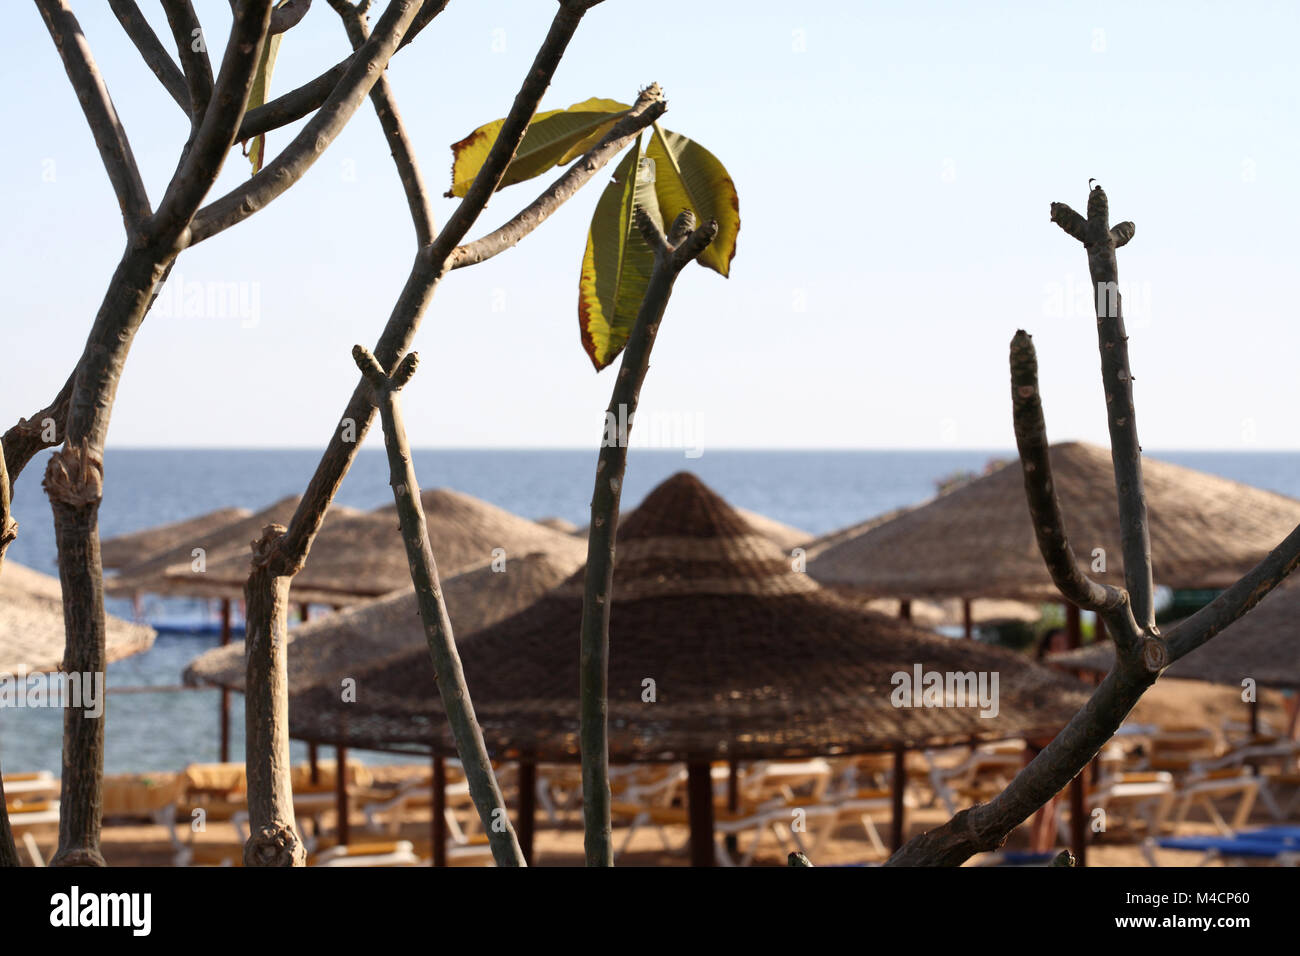 Sea landscape, Egypt, Sharm El Sheikh - Stock Image